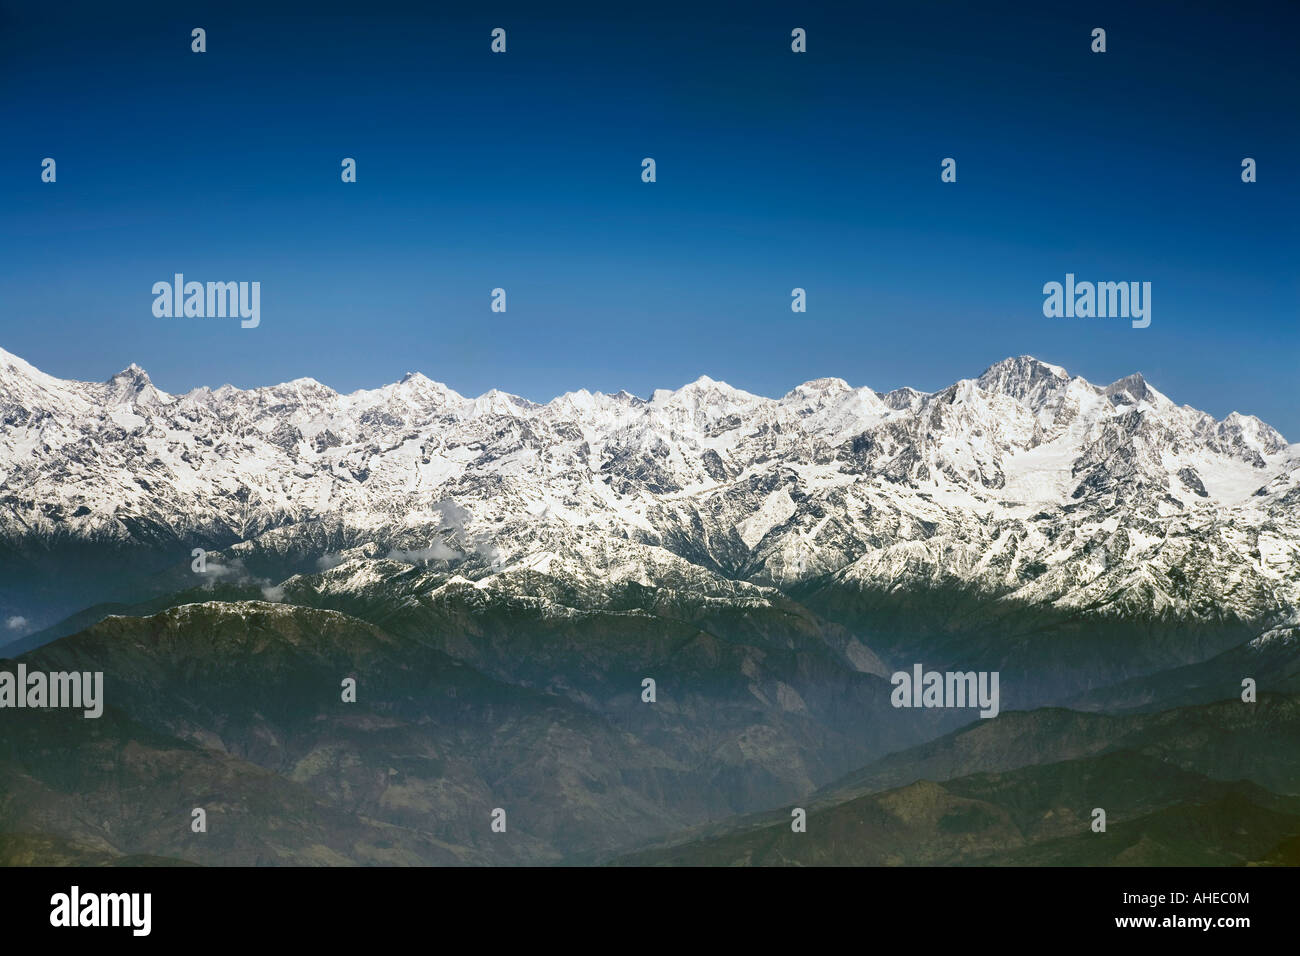 Wide expansive aerial view of Snowcapped Himalayan peaks over their foothills below a clear blue sky Stock Photo